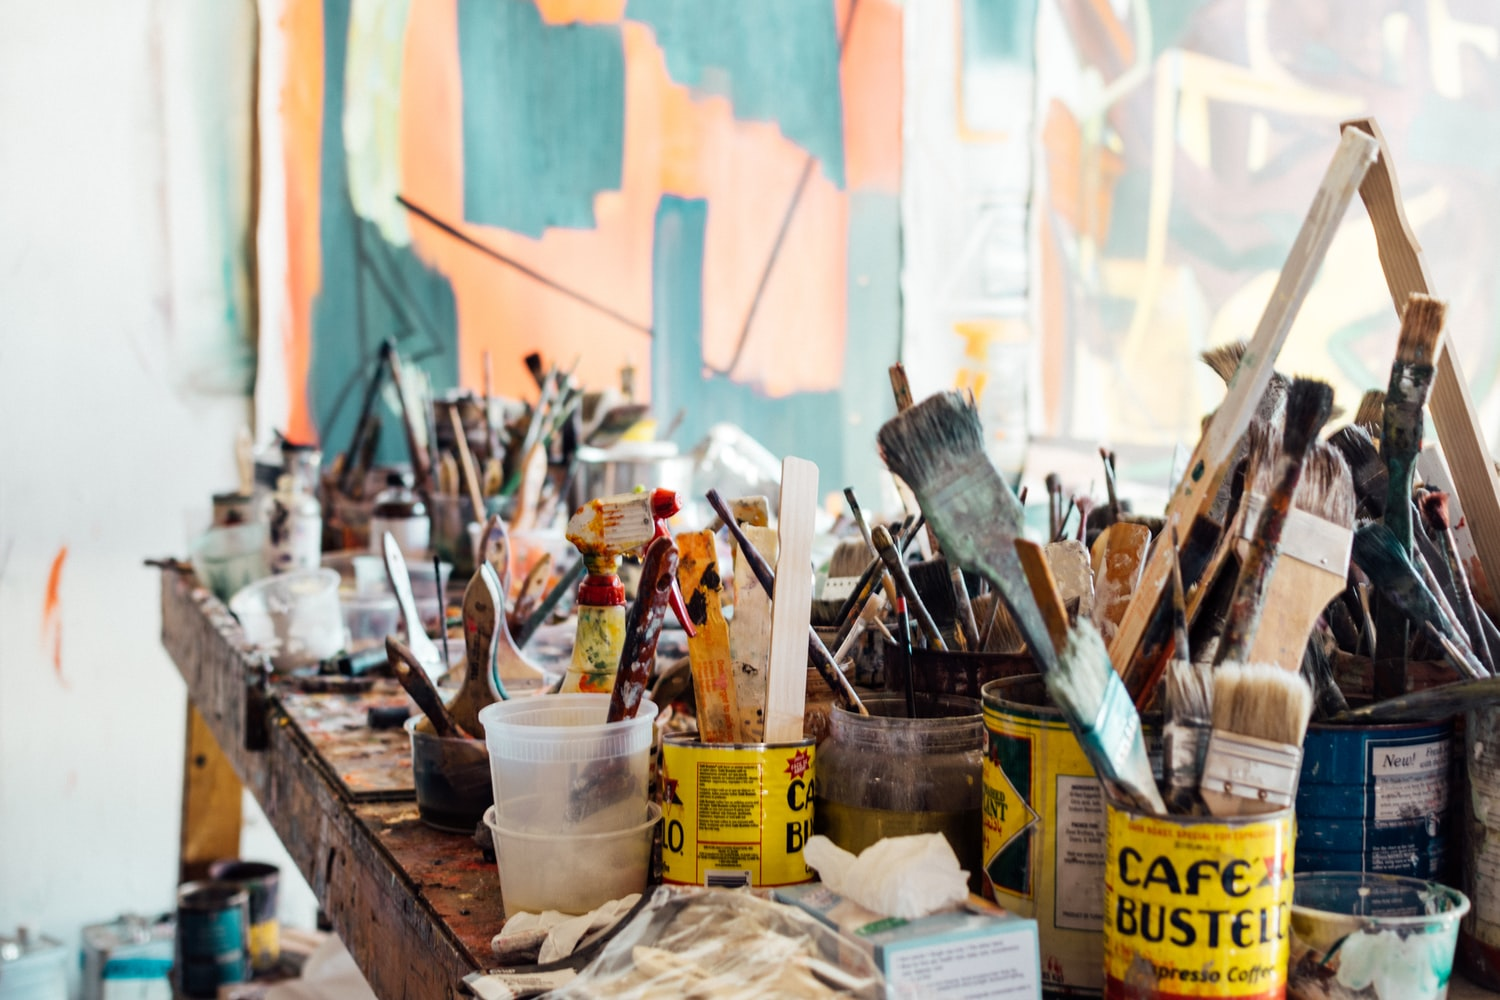 A table full of paintbrushes in different pots and cups, which you can use at the small arms building in Mississauga if you use the workshop.